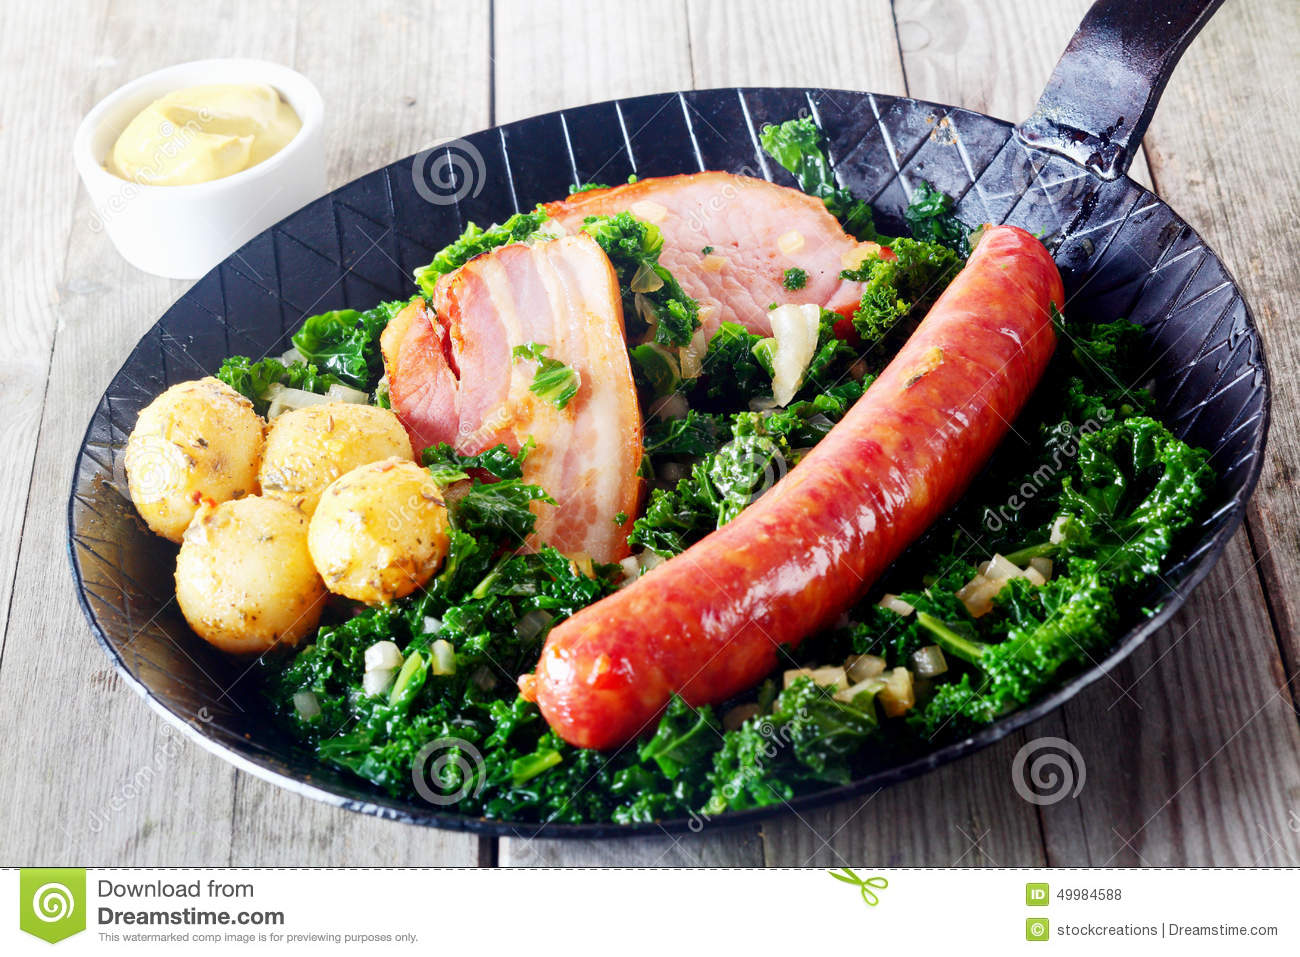 Gourmet German Cuisine On Pan With Mustard On Side Stock Photo Image Of Lunch Chop 49984588